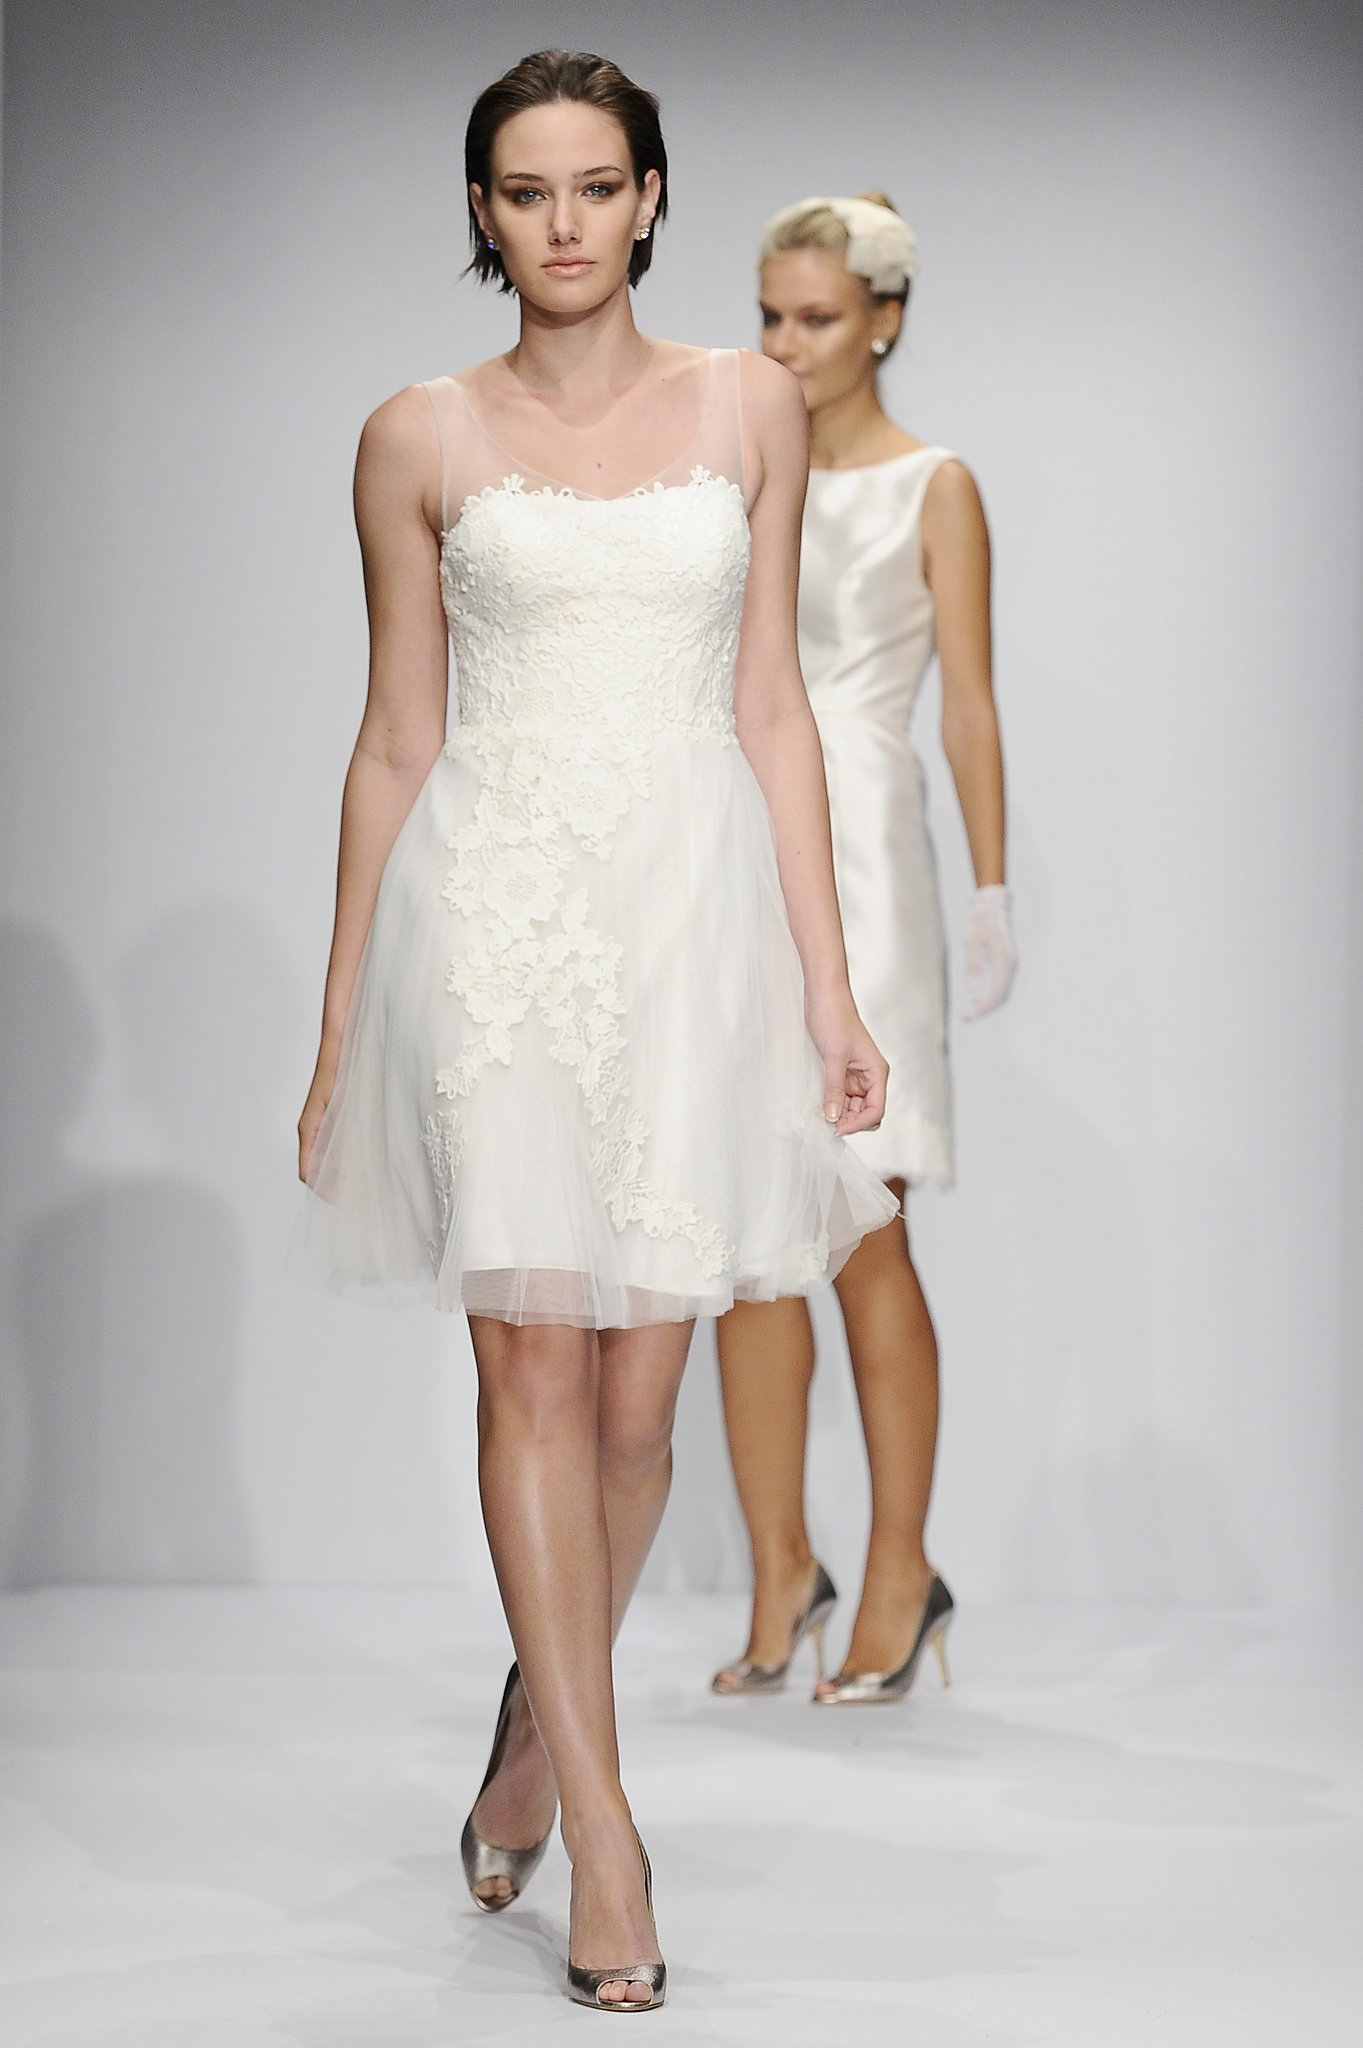 The Bridal Dress: Short Bridal Gown Aren\'t Short in Style and Grace ...